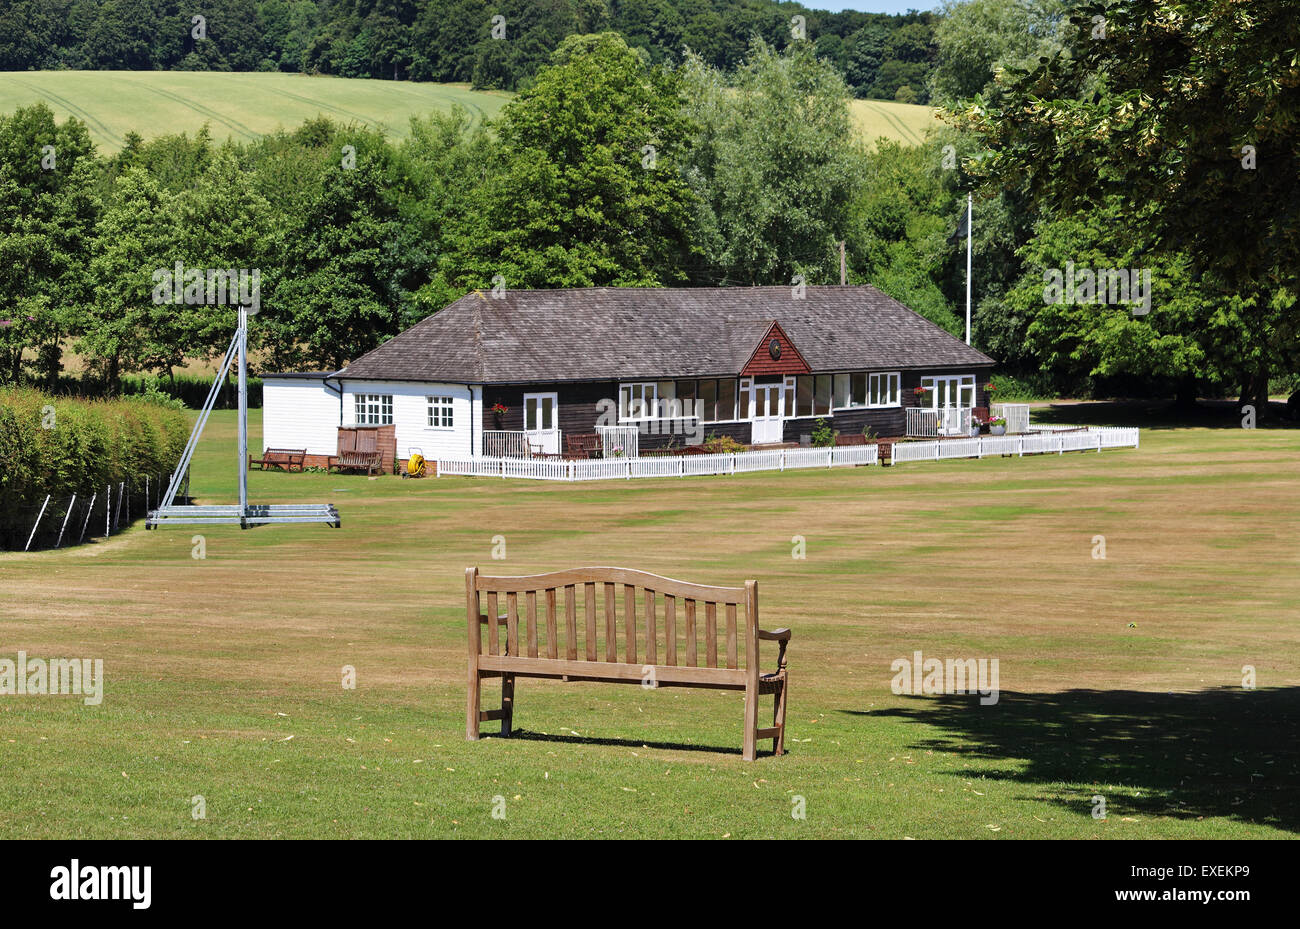 Traditional English Cricket field and Pavilion with bench seat in the foreground - Stock Image